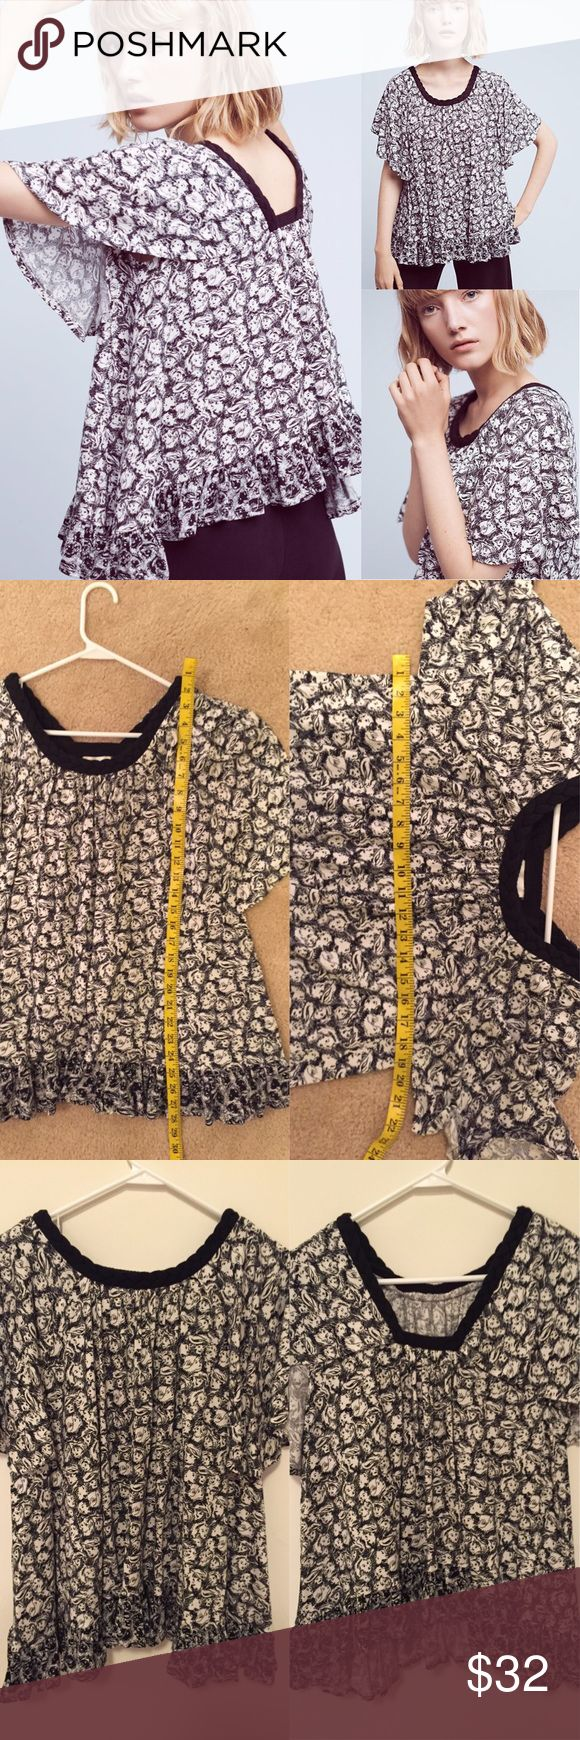 Anthropologie Jacquen swing top by Deletta Size small. Gorgeous printed swing top with braided detail.❌ trades or off-site transactions.I offer a variety of sizes in my closet therefore I do NOT model items.•I will counteroffer with the best value I can give at the time•I have 2 littles &🚑 an illness that sometimes requires serious medical attention and alot of hospital visits.📬Sometimes shipping takes a little longer because of my illness but usually I get it out within 2 days.Thank you…